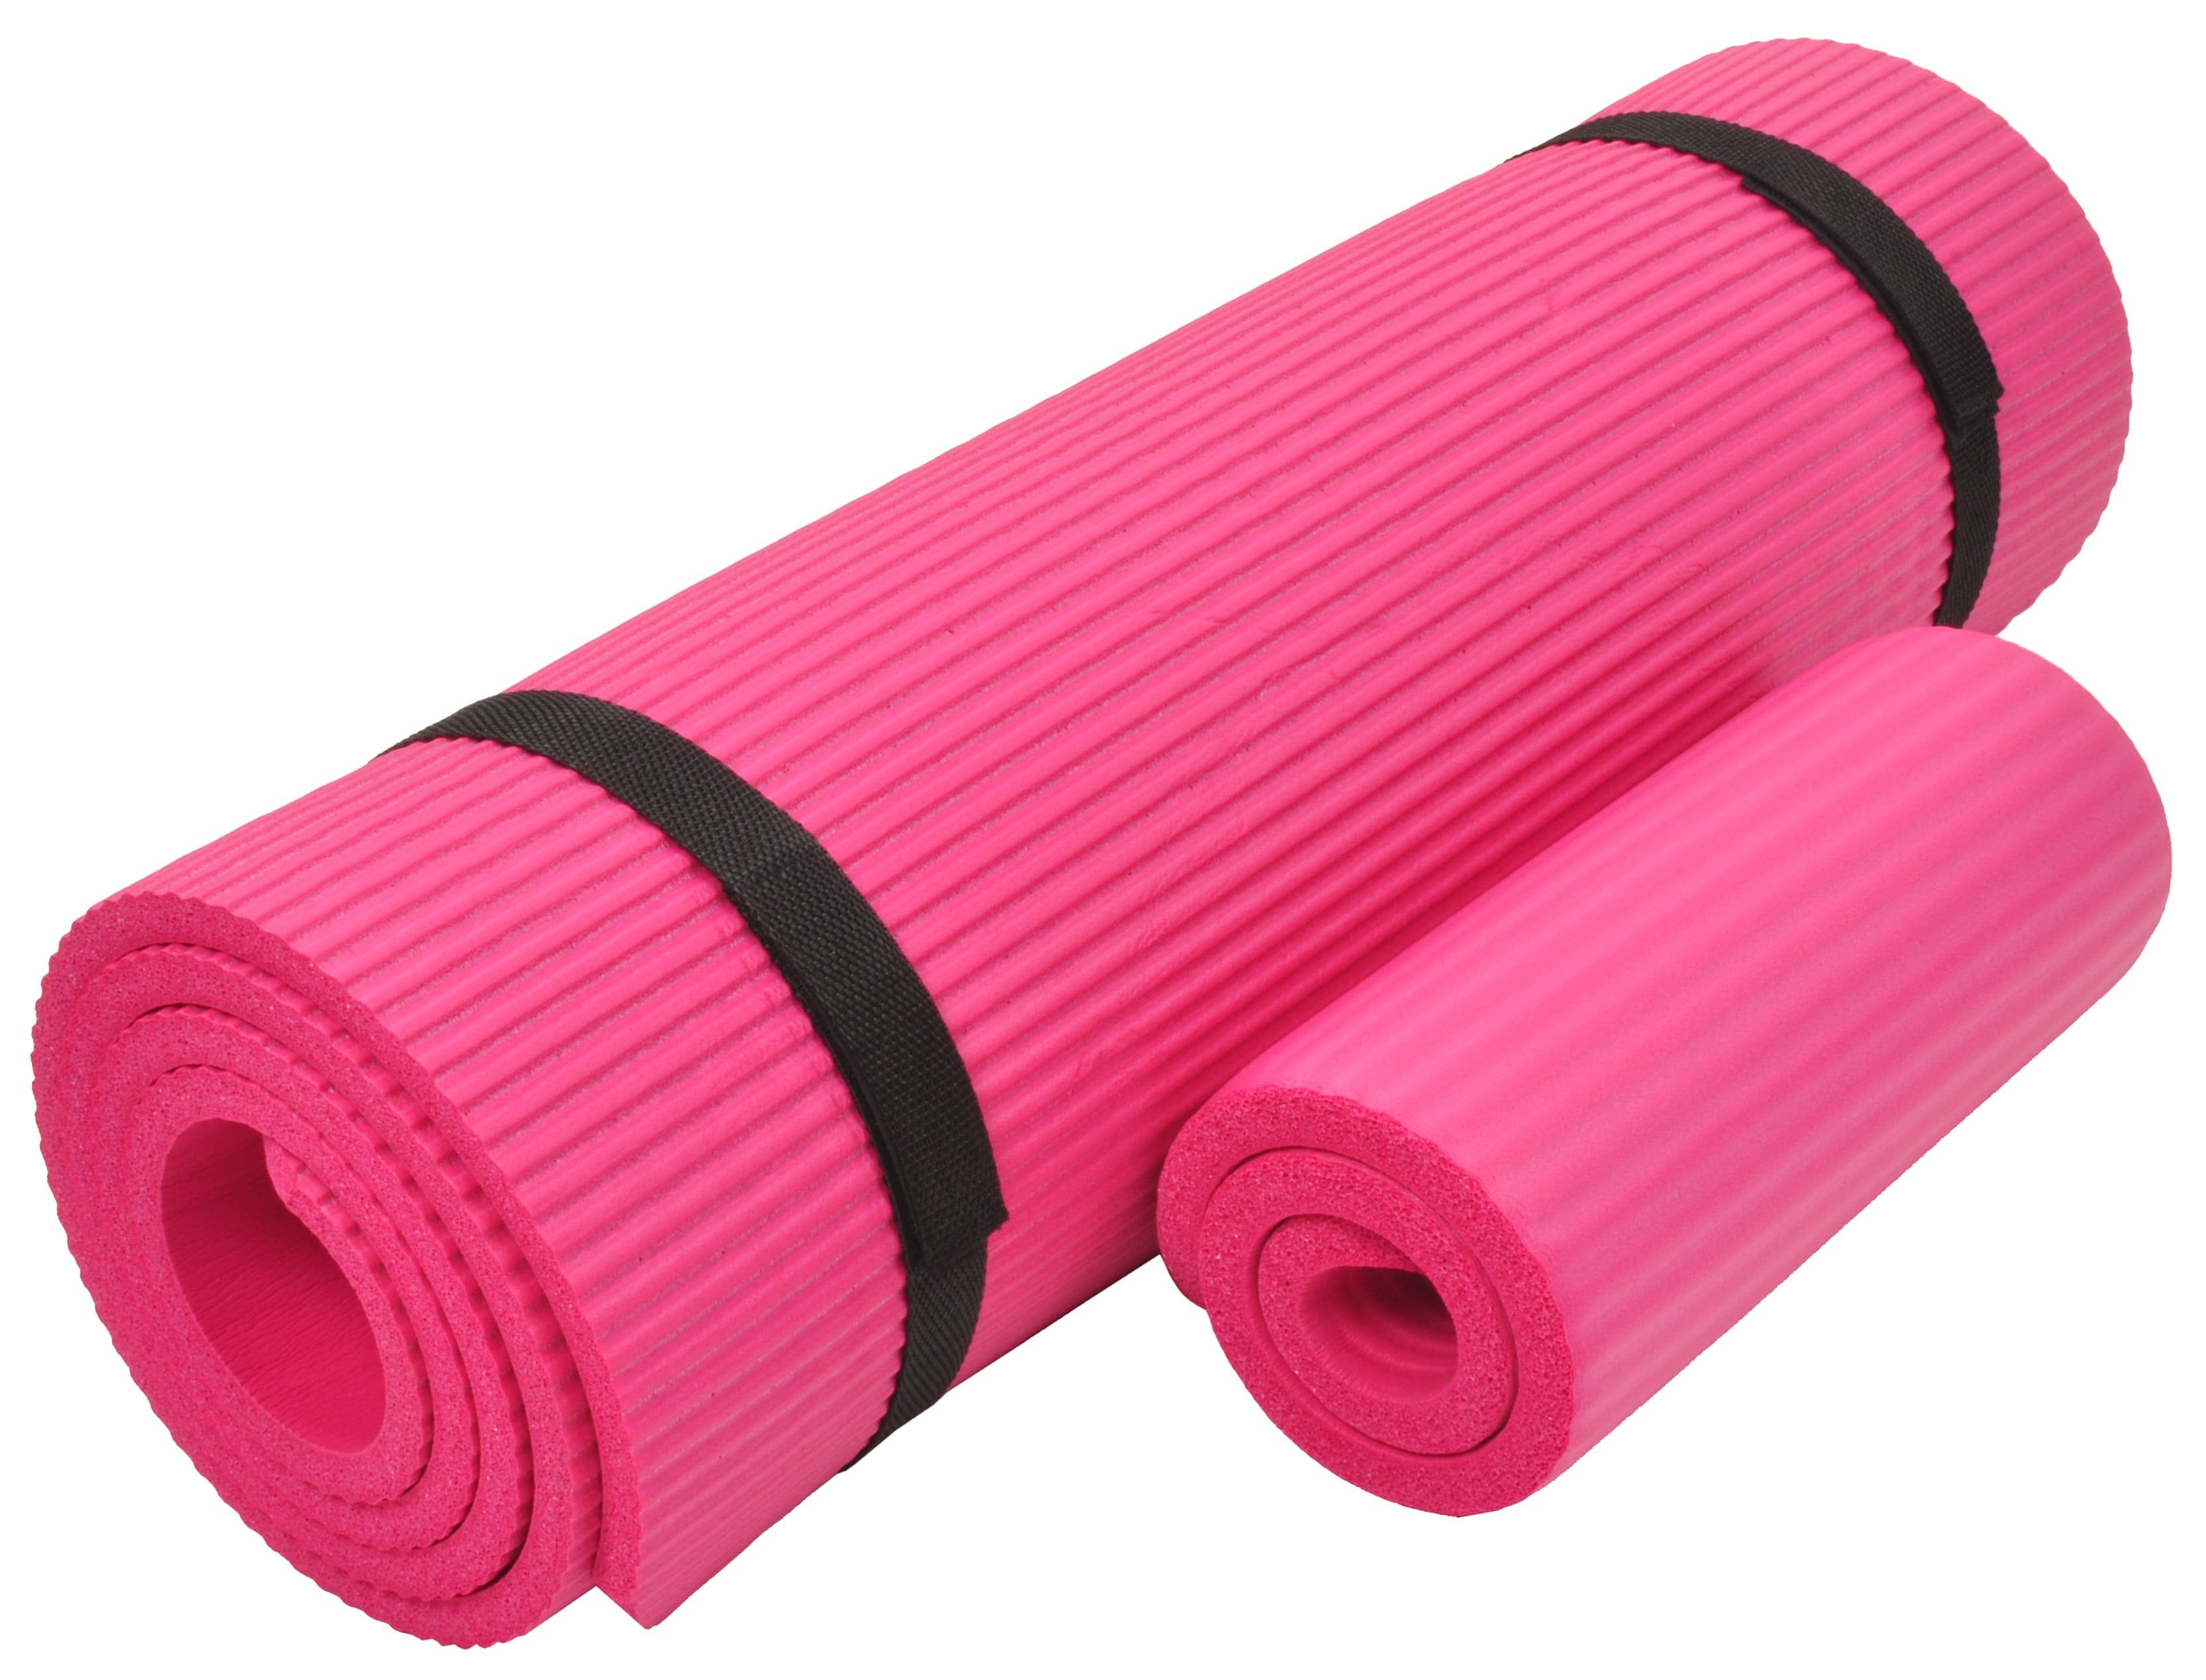 [US Direct] Original BalanceFrom GoYoga+ All-Purpose 1/2-Inch Extra Thick High Density Anti-Tear Exercise Yoga Mat and Knee Pad with Carrying Strap, Blue Pink